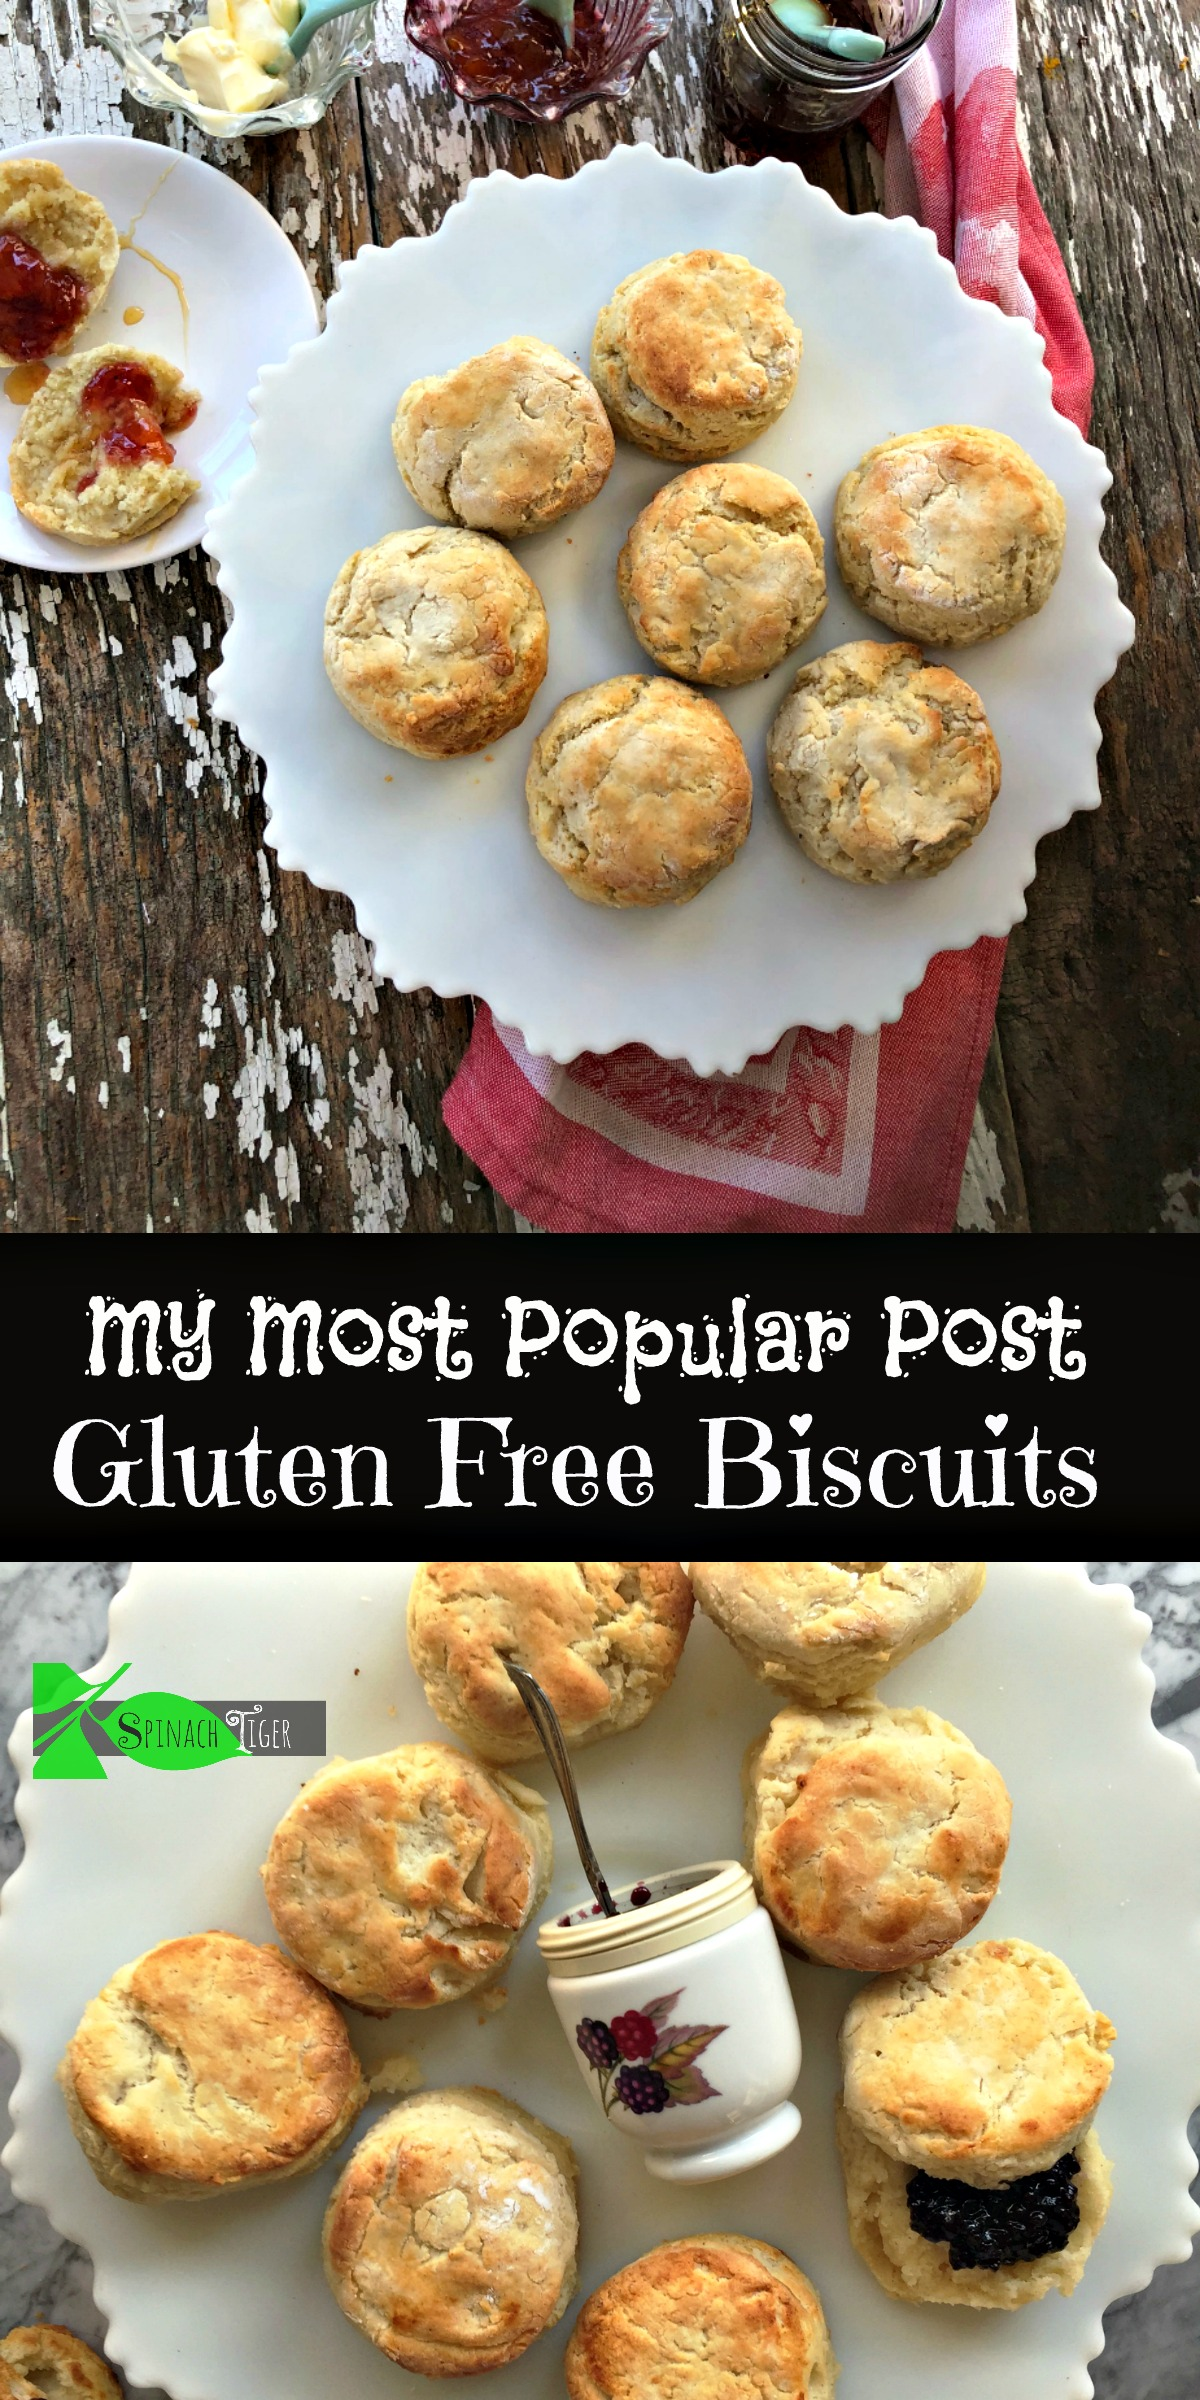 The Very Best Gluten Free biscuit recipe from Spinach Tiger